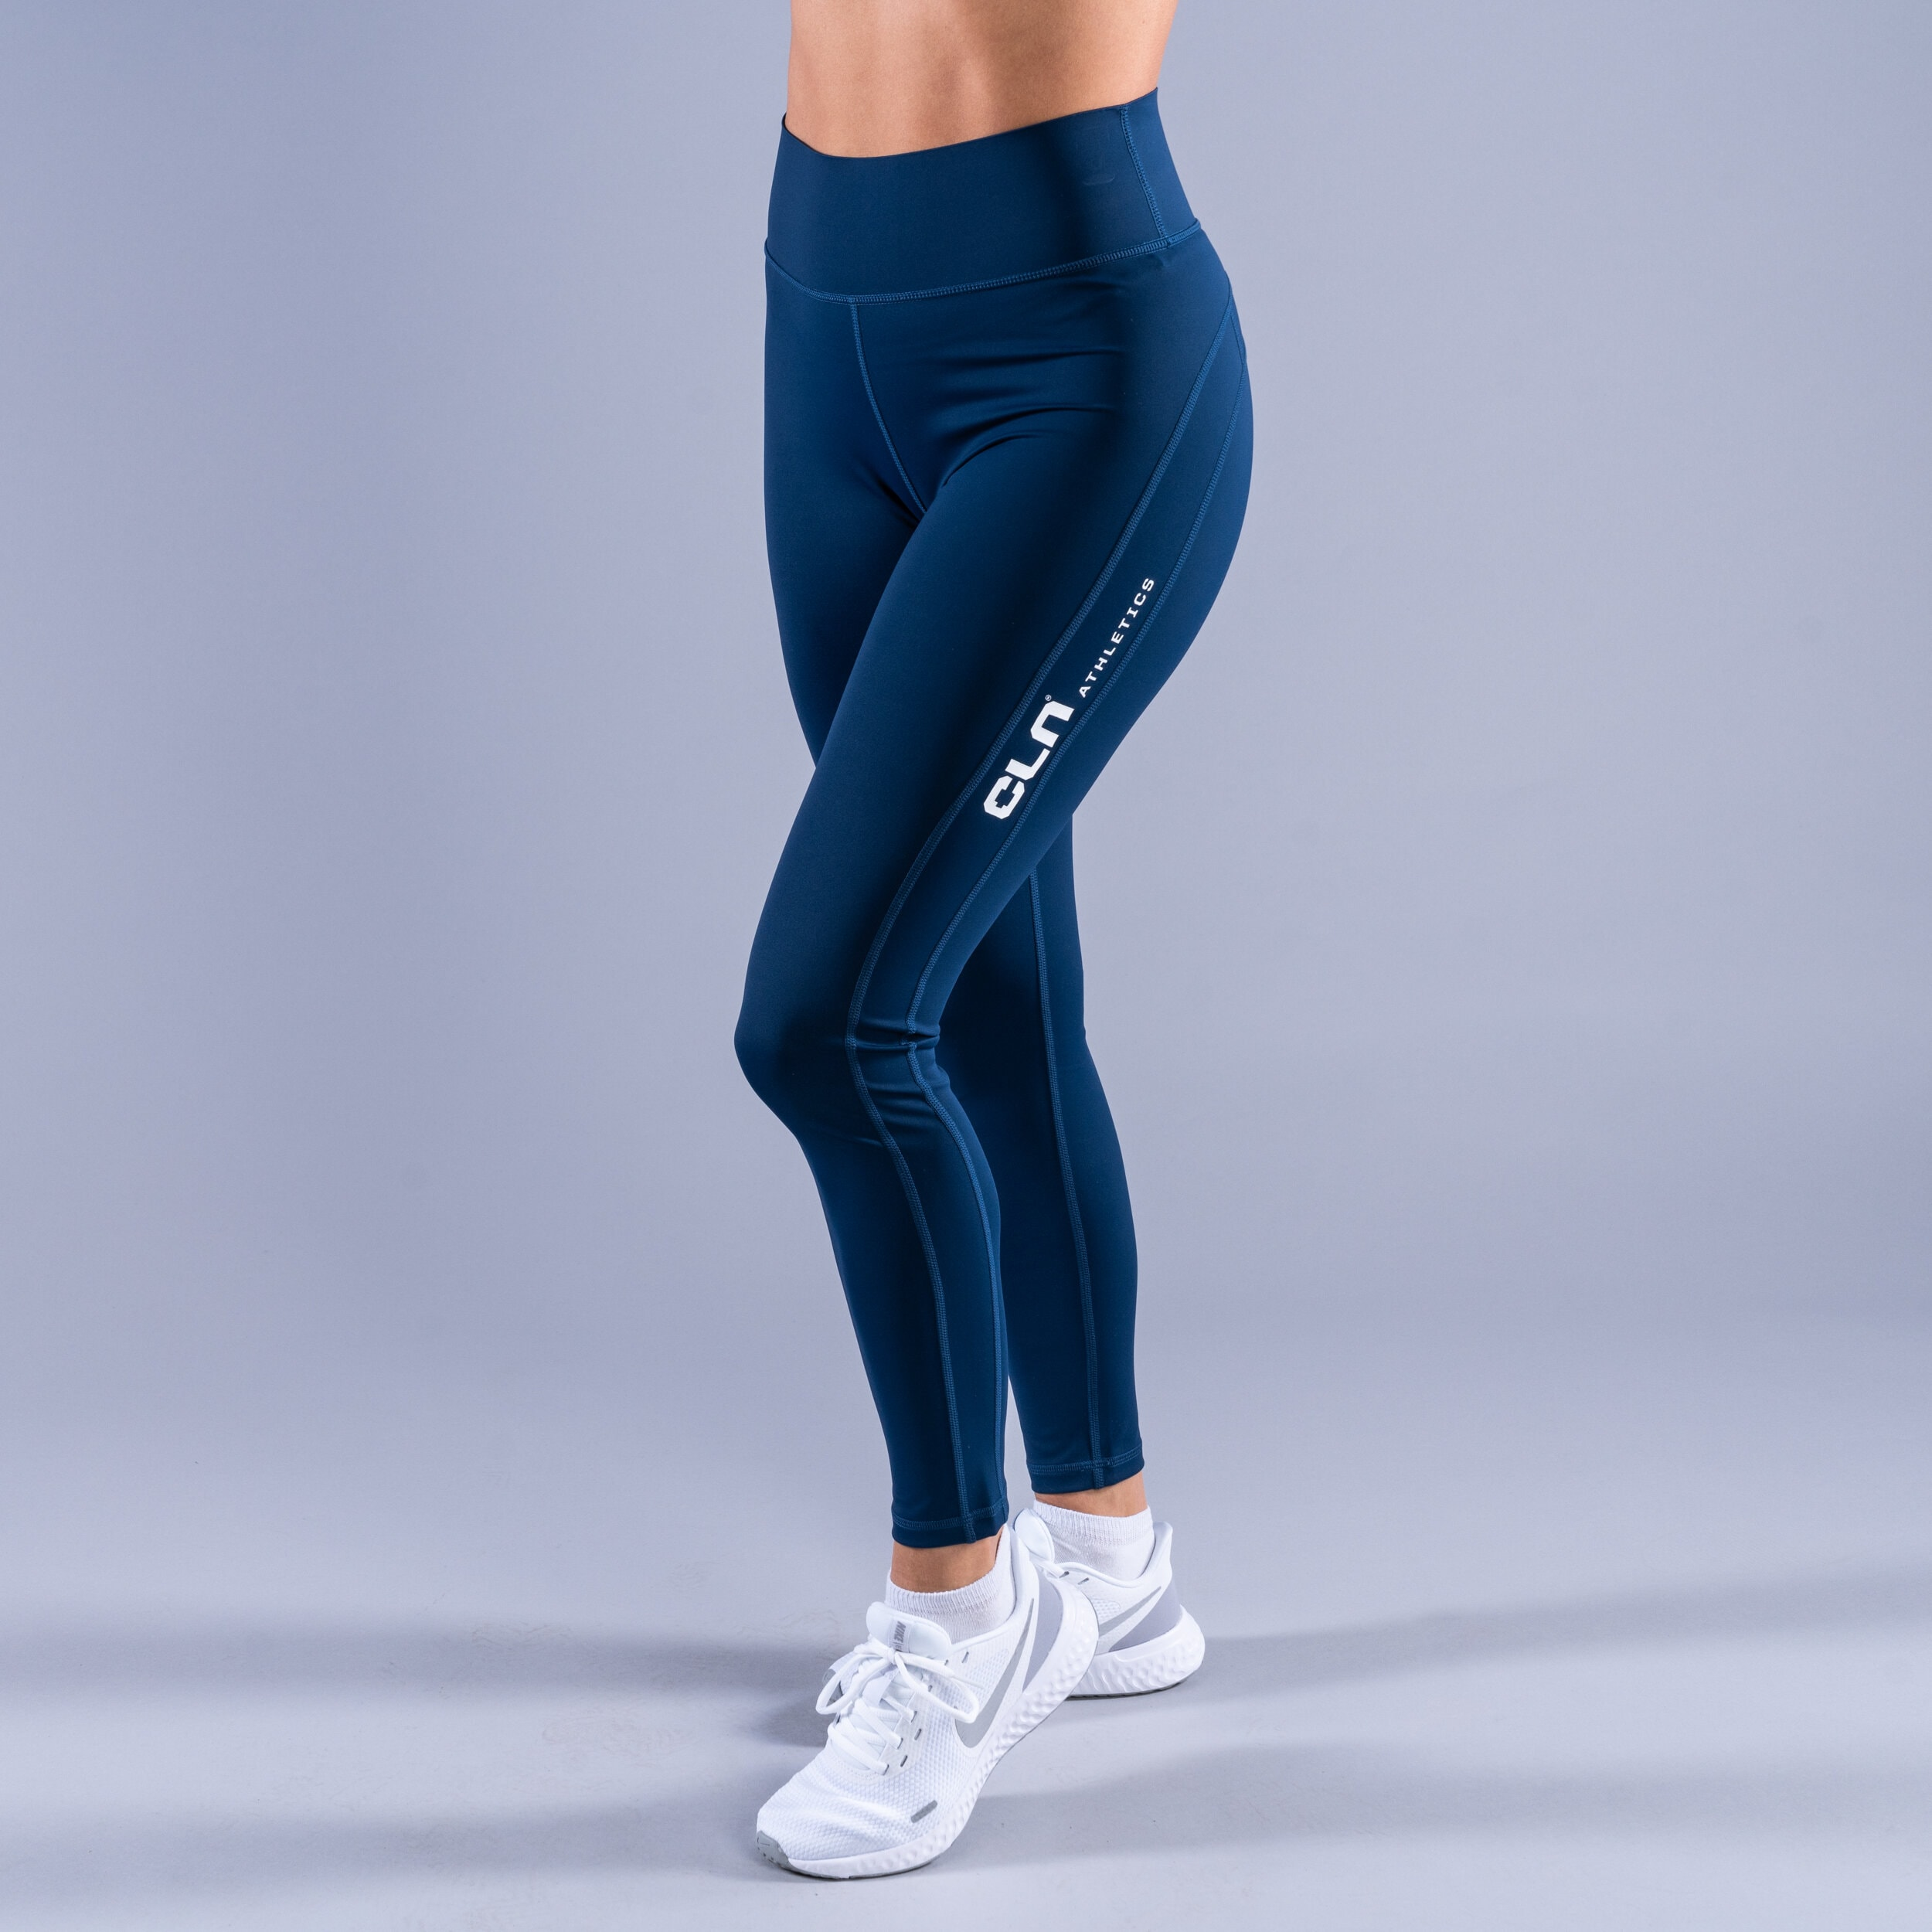 CLN Omni ws tights Titan blue